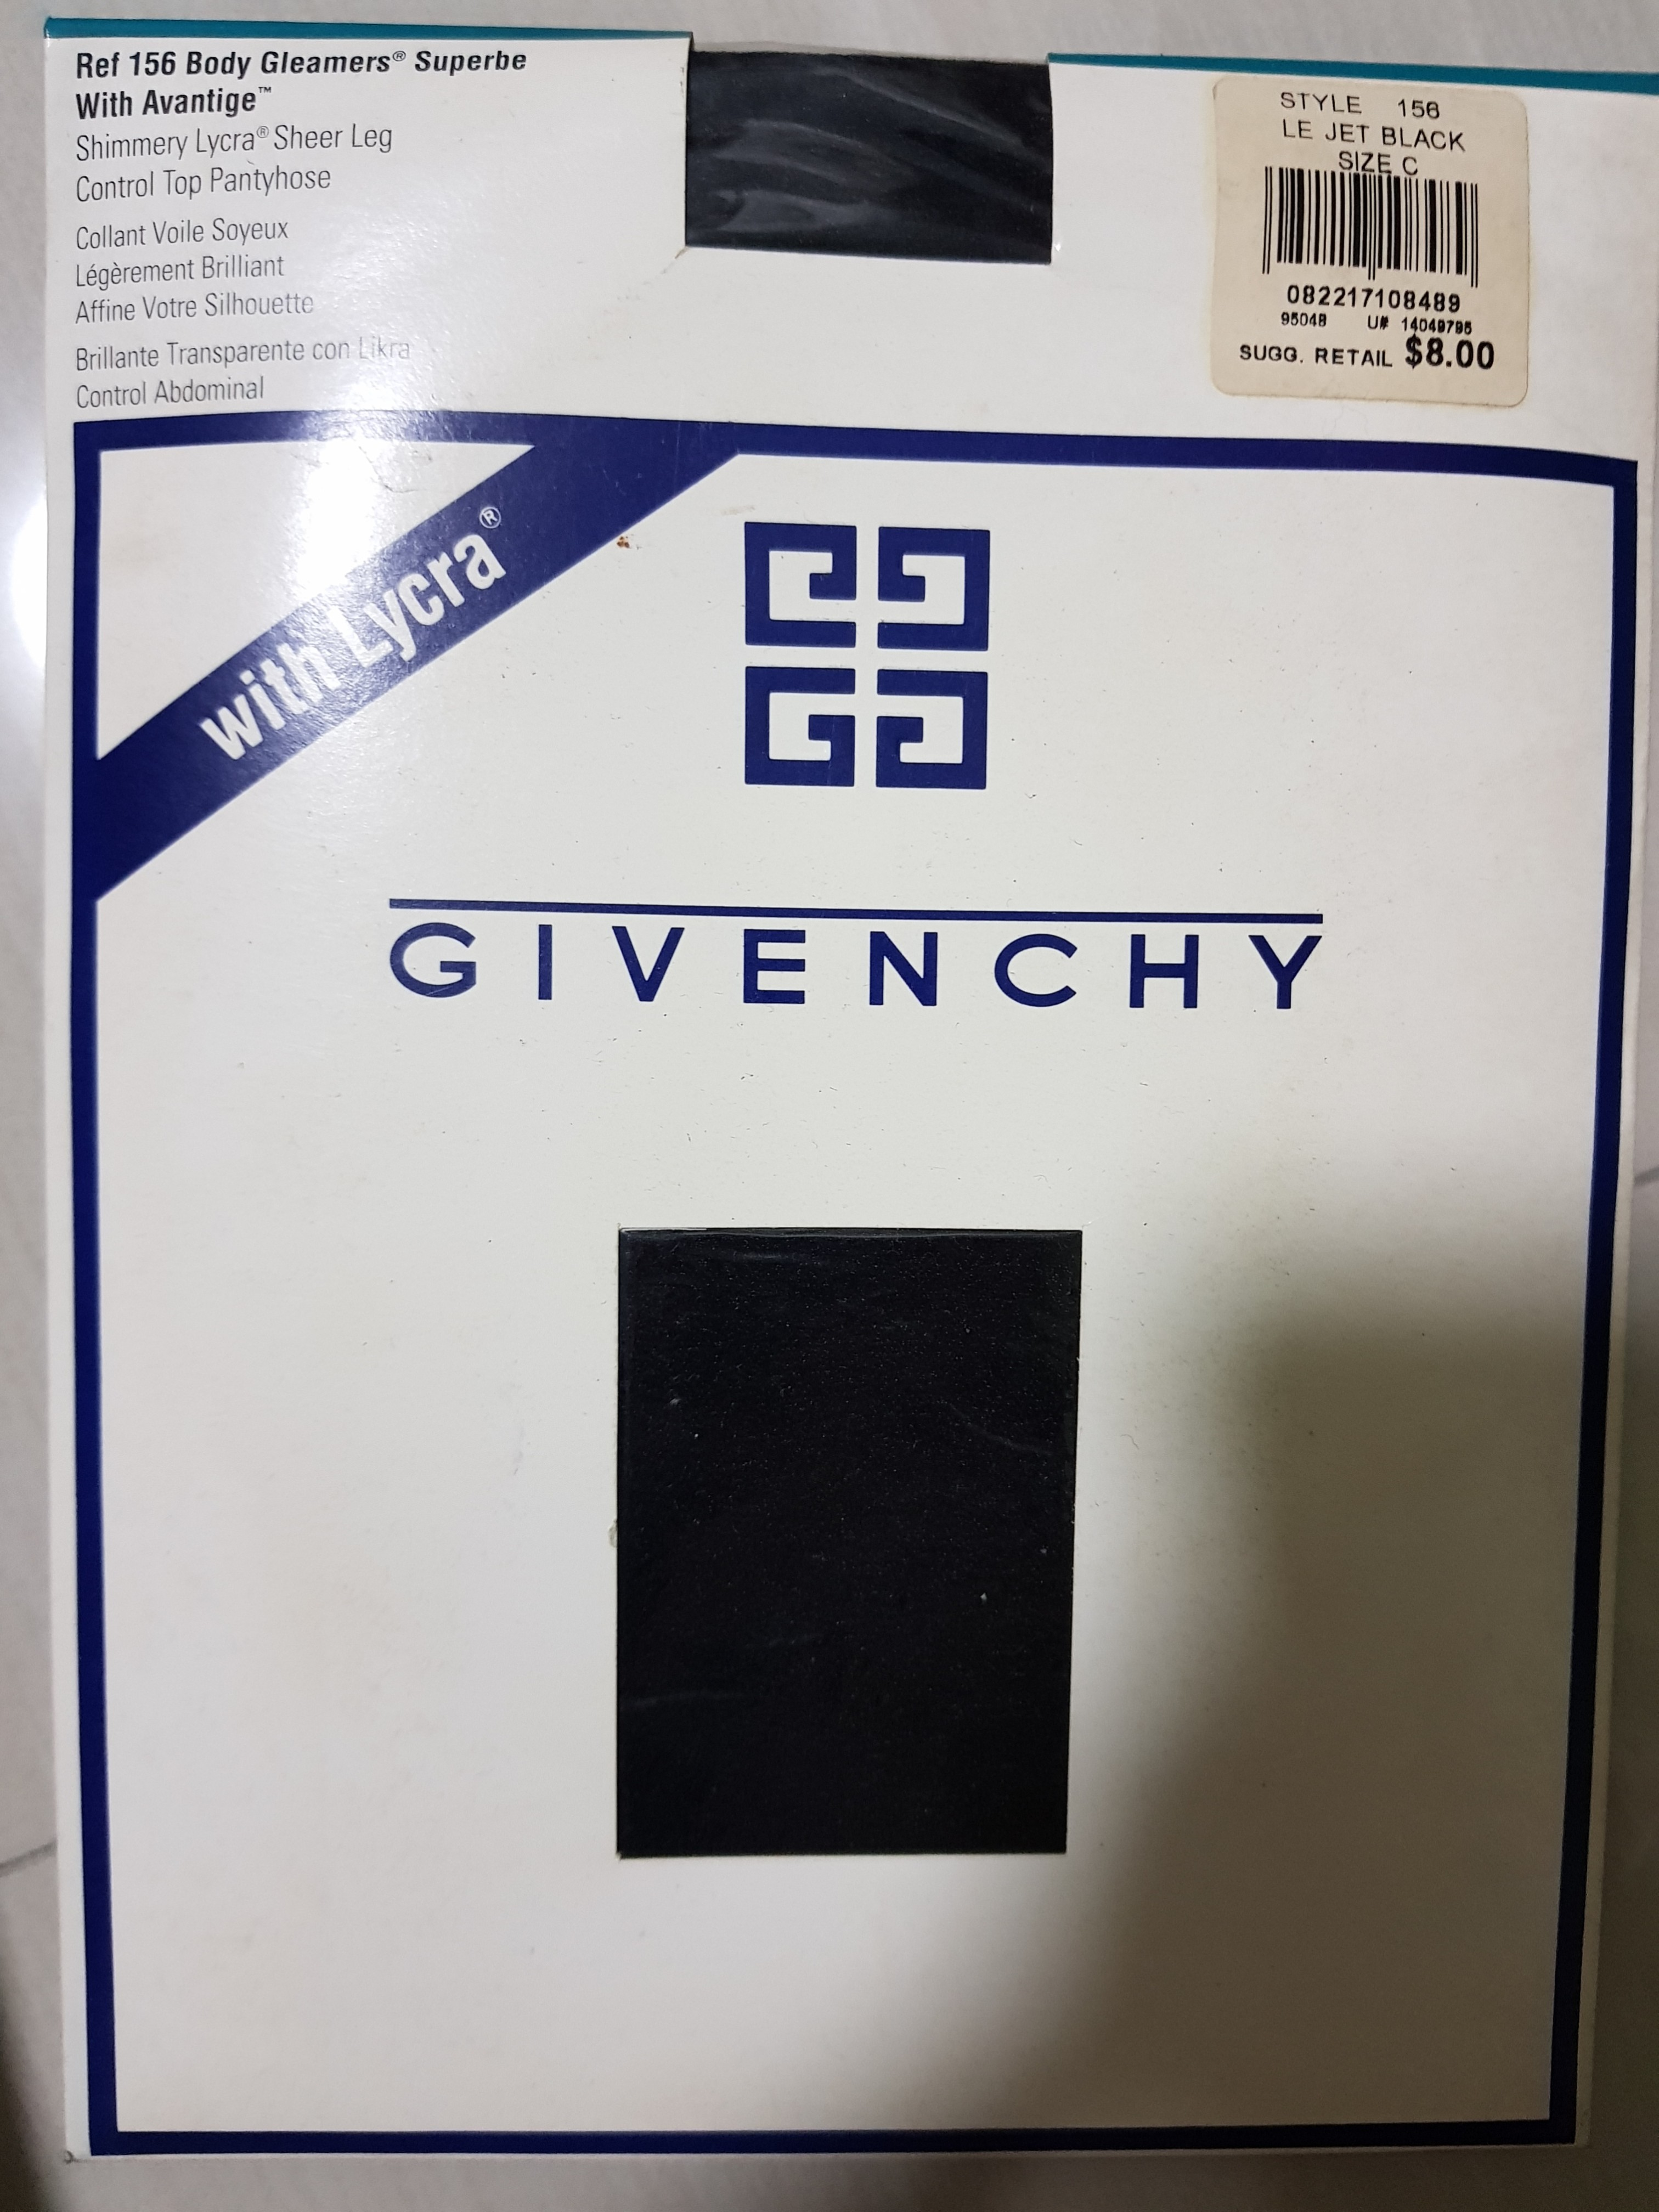 3ebf7651c51d7 Givenchy pantyhose, Women's Fashion, Clothes, Others on Carousell